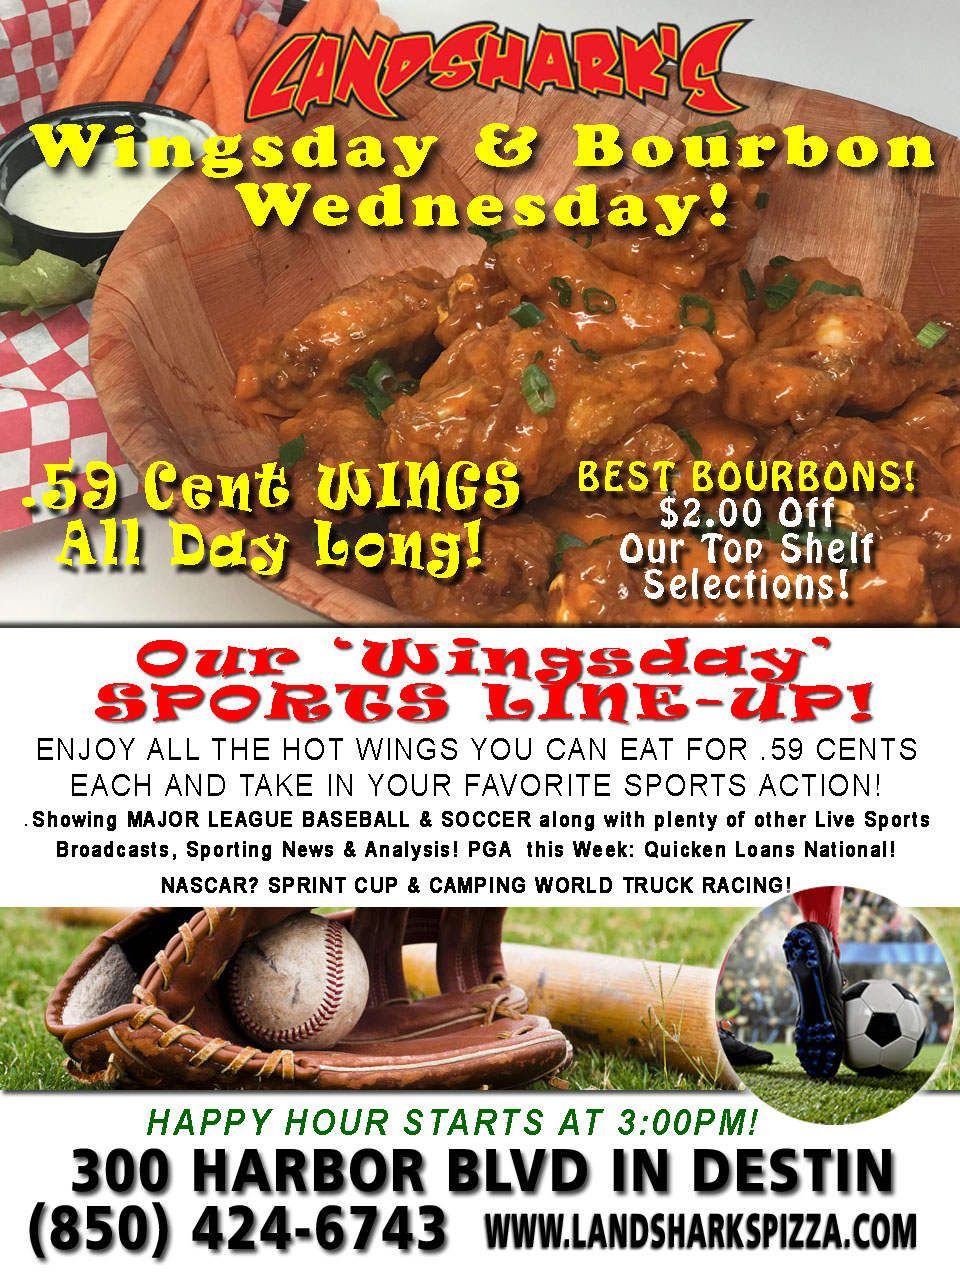 WINGSDAY – 59-Cent Wings ALL DAY TODAY! $2 Off ALL Top Shelf Bourbons & FREE SUNSHINE!